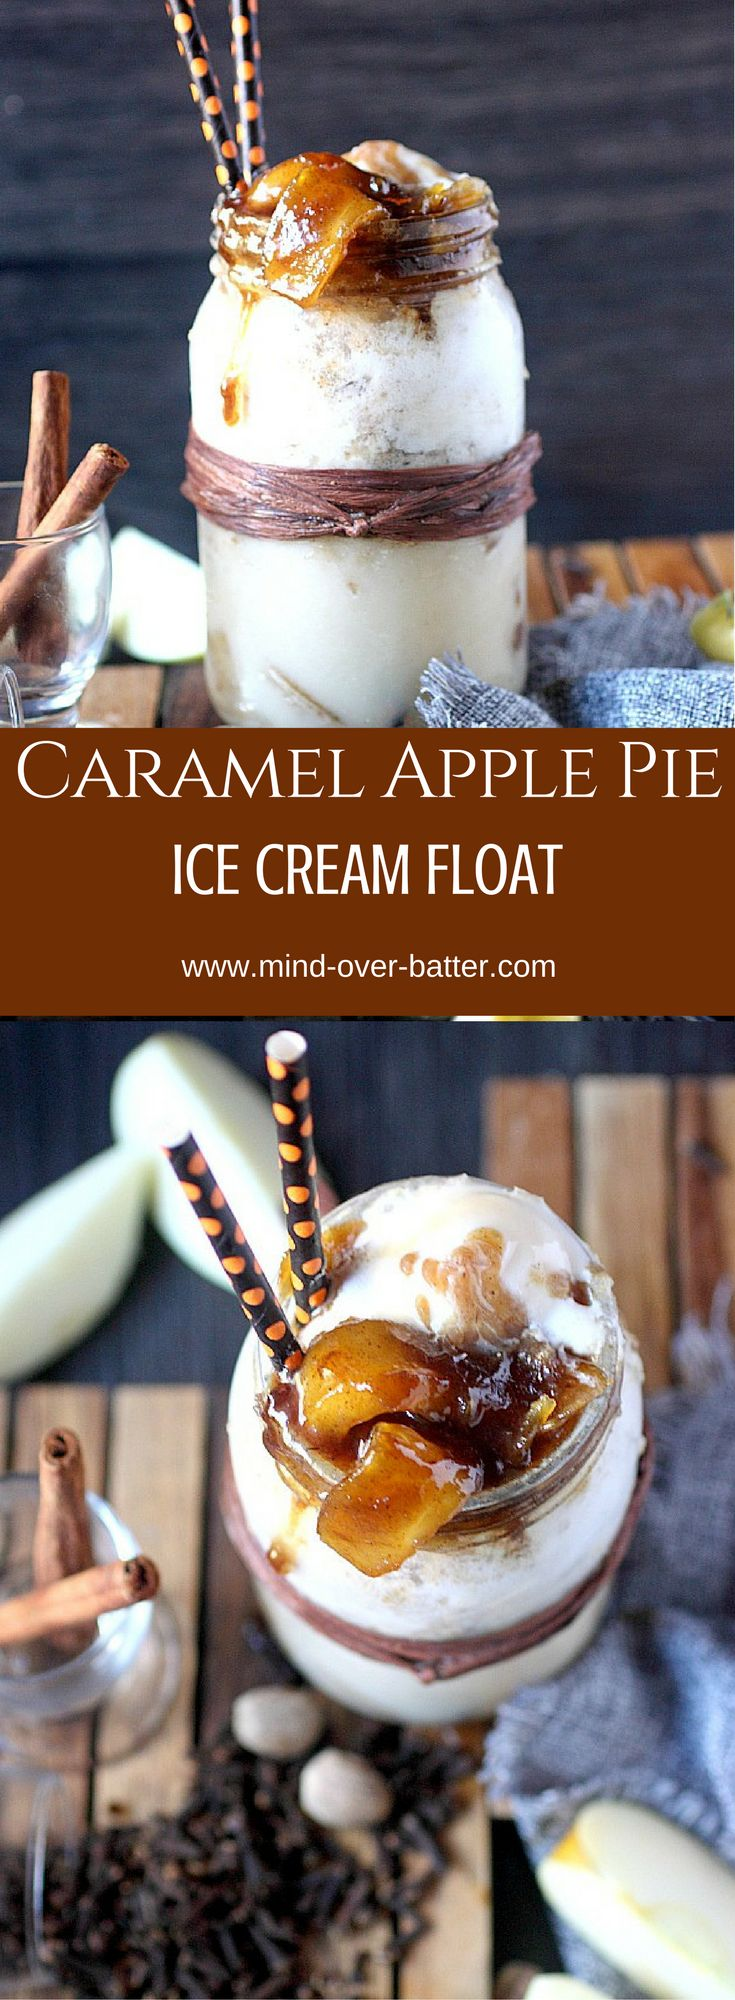 Caramel Apple Pie Ice Cream Float -- www.mind-over…